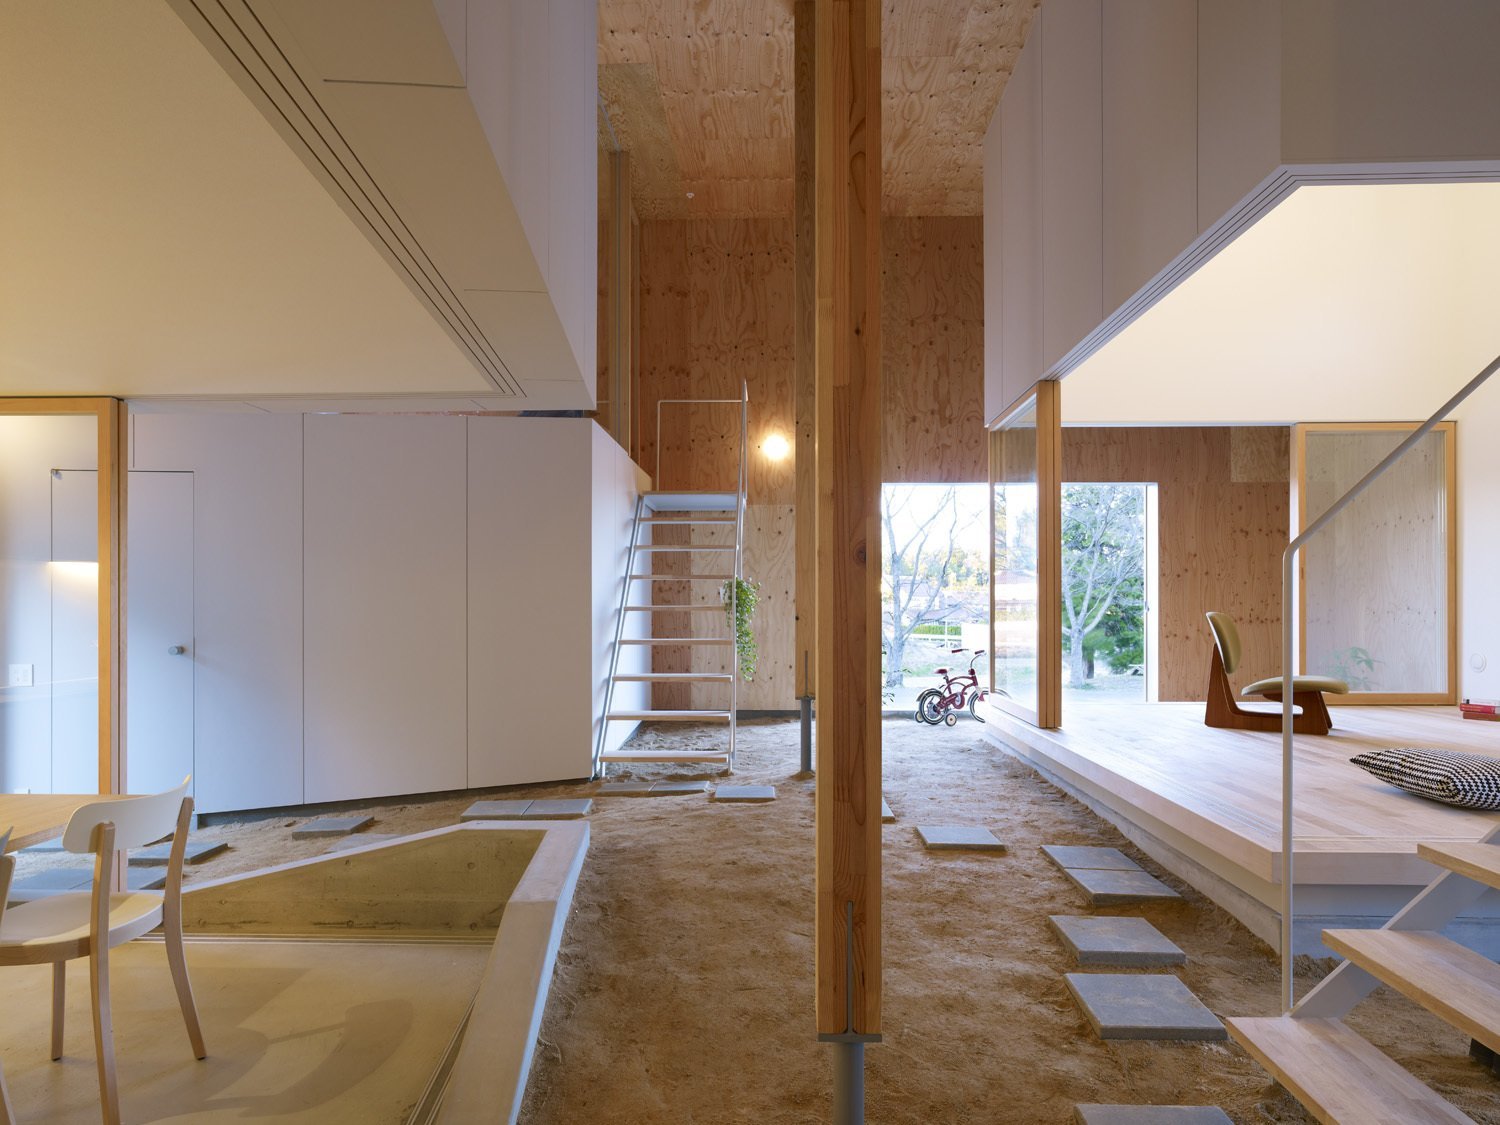 """Staircase, Metal Railing, and Wood Tread """"By taking in the slope into the building and creating a sloped 'doma' area, it was possible to bring the outside into the building,"""" say the architects.   Photos from A Dirt Floor Snakes Through This Spectacular Japanese House"""